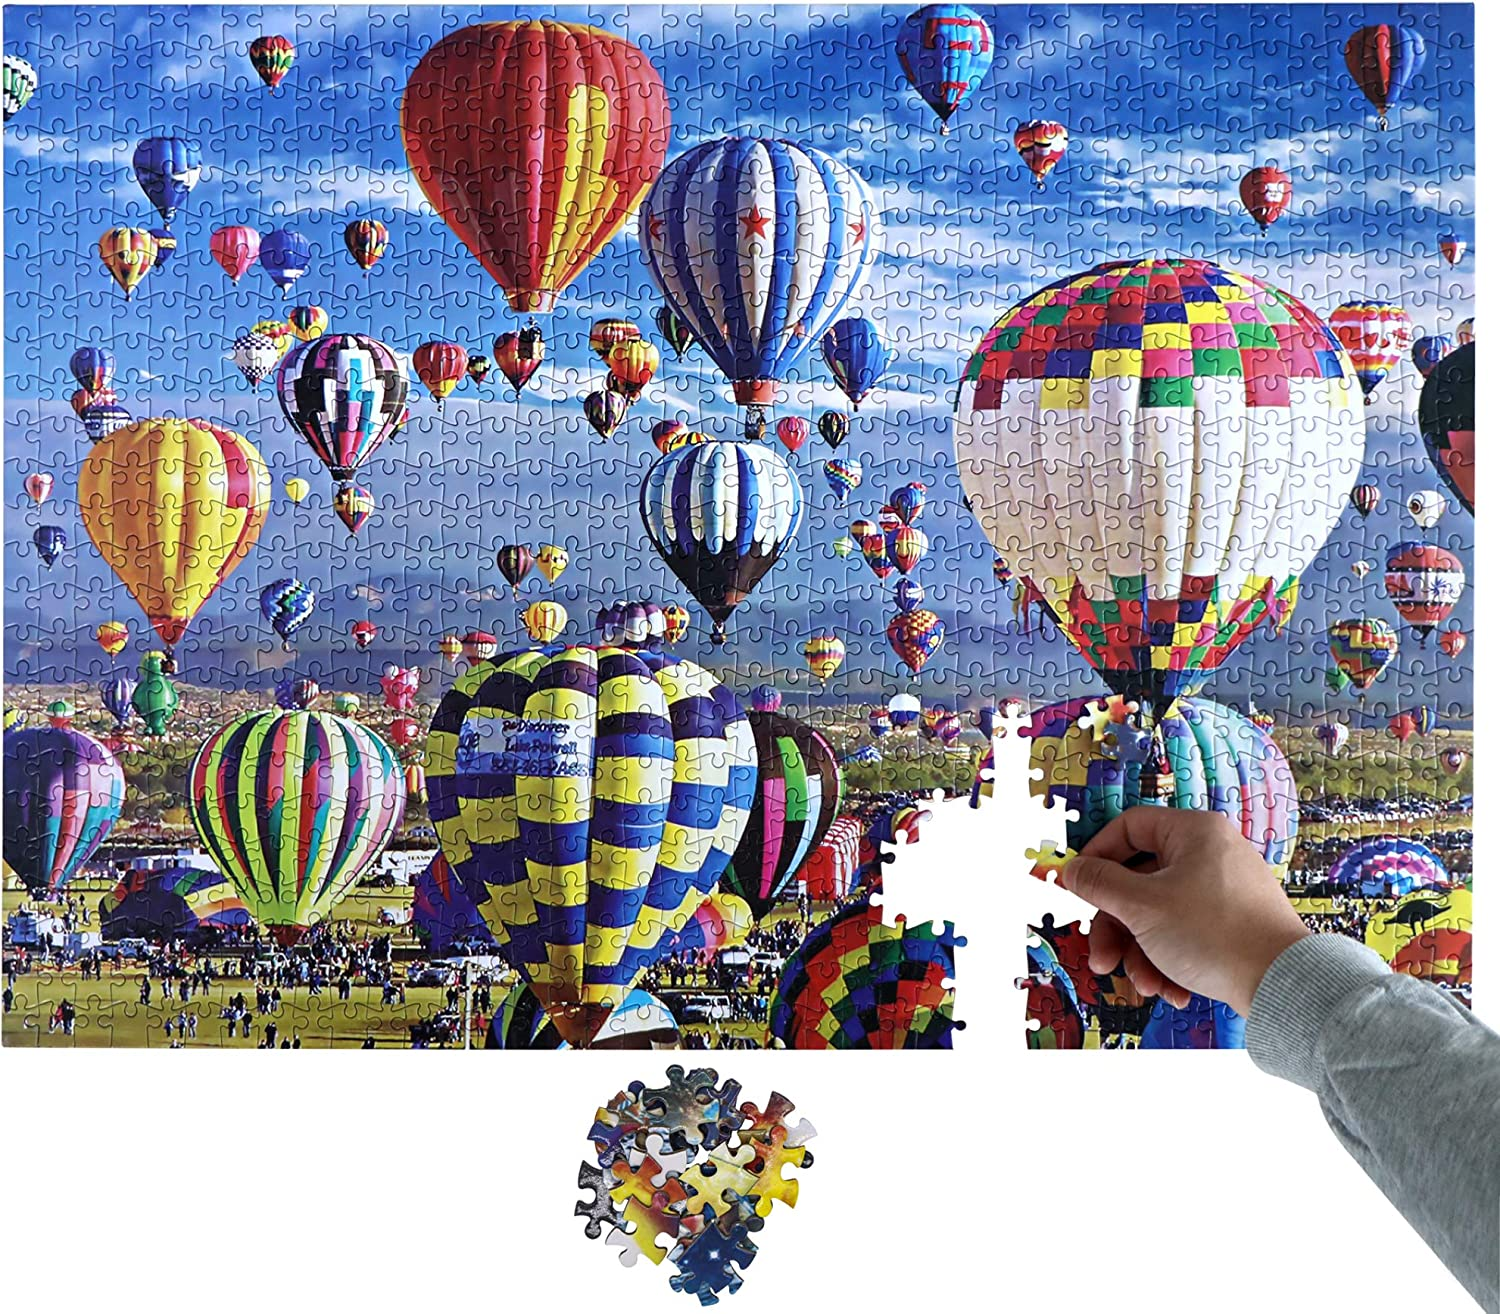 """hot air Balloon Jigsaw Puzzles 1000 Pieces for Adults, Family Puzzles for Kids and Adults, Decompression Game Toys, Large Puzzle Game Toys Gift 27.5"""" x 19.6"""""""